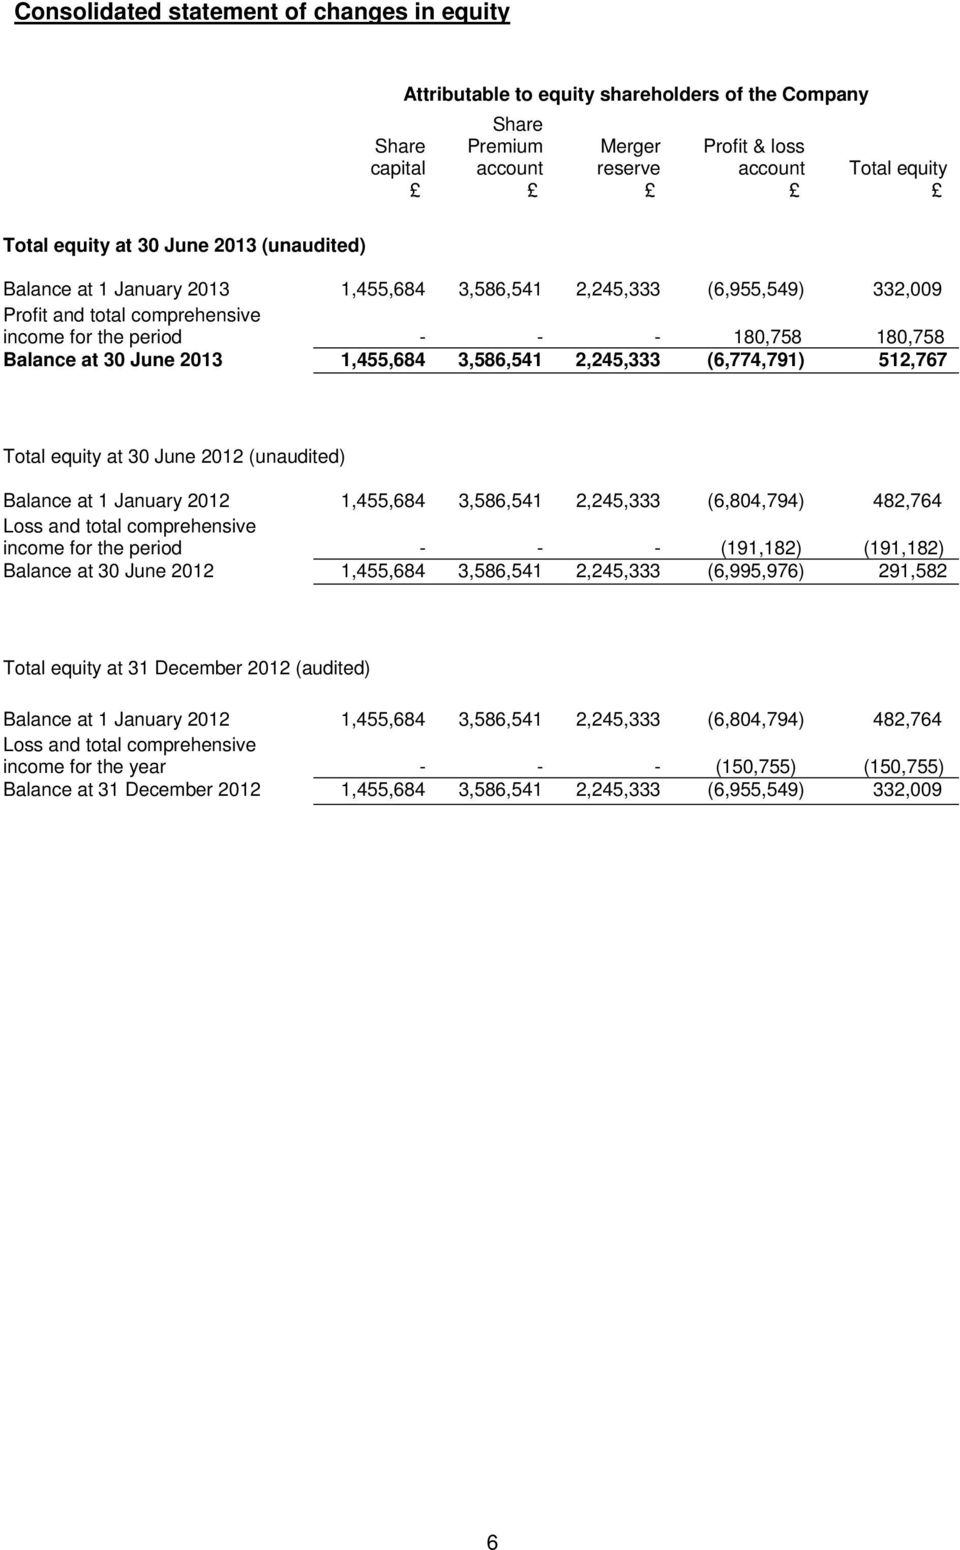 1,455,684 3,586,541 2,245,333 (6,774,791) 512,767 Total equity at 30 June 2012 (unaudited) Balance at 1 January 2012 1,455,684 3,586,541 2,245,333 (6,804,794) 482,764 Loss and total comprehensive